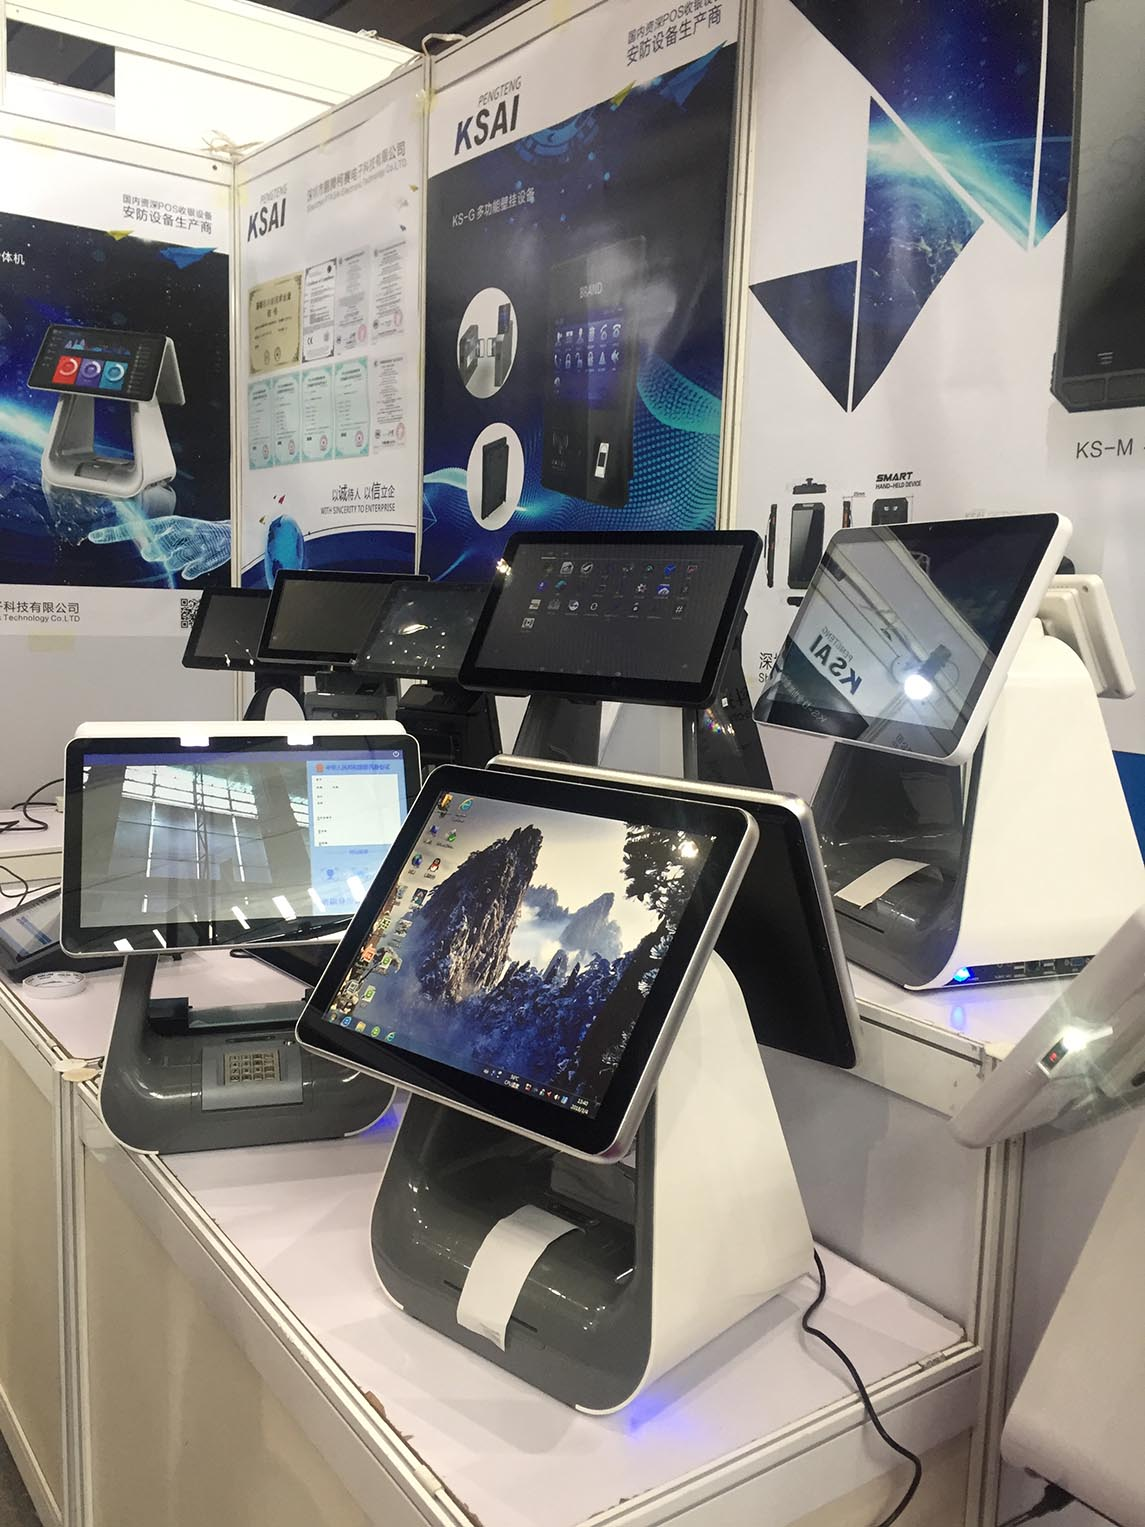 PTKSAI-Smart Expo China 20183 | News On Ptksai Electronic Technology-1